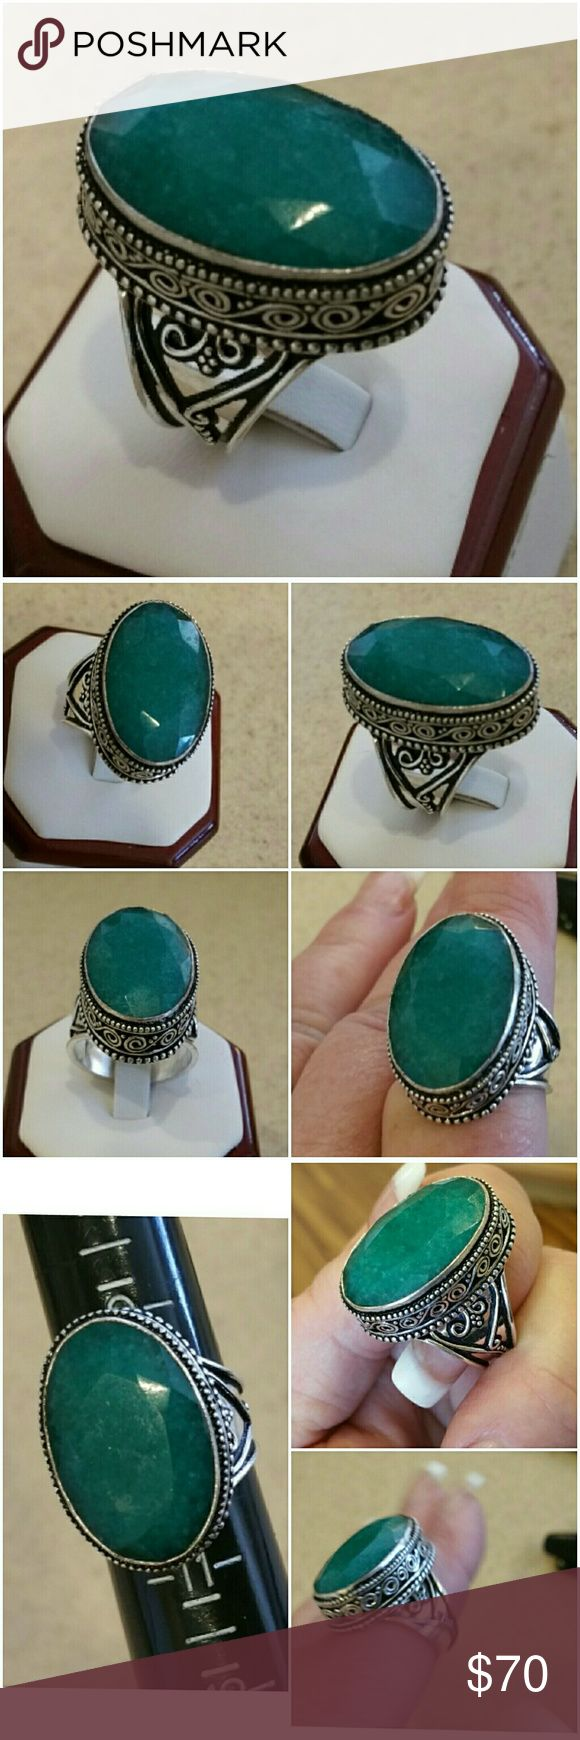 Genuine 39ct Natural Emerald Ring size 10 Wow!  Statement Solitaire!   Knows how to make an impact! Light colored 39ct Natural Emerald set in 925 stamped Solid Sterling Silver. Please see all pictures for details. Brand New. Never Worn. Wholesale Prices. Retail Value. 499.00 Jewelry Rings